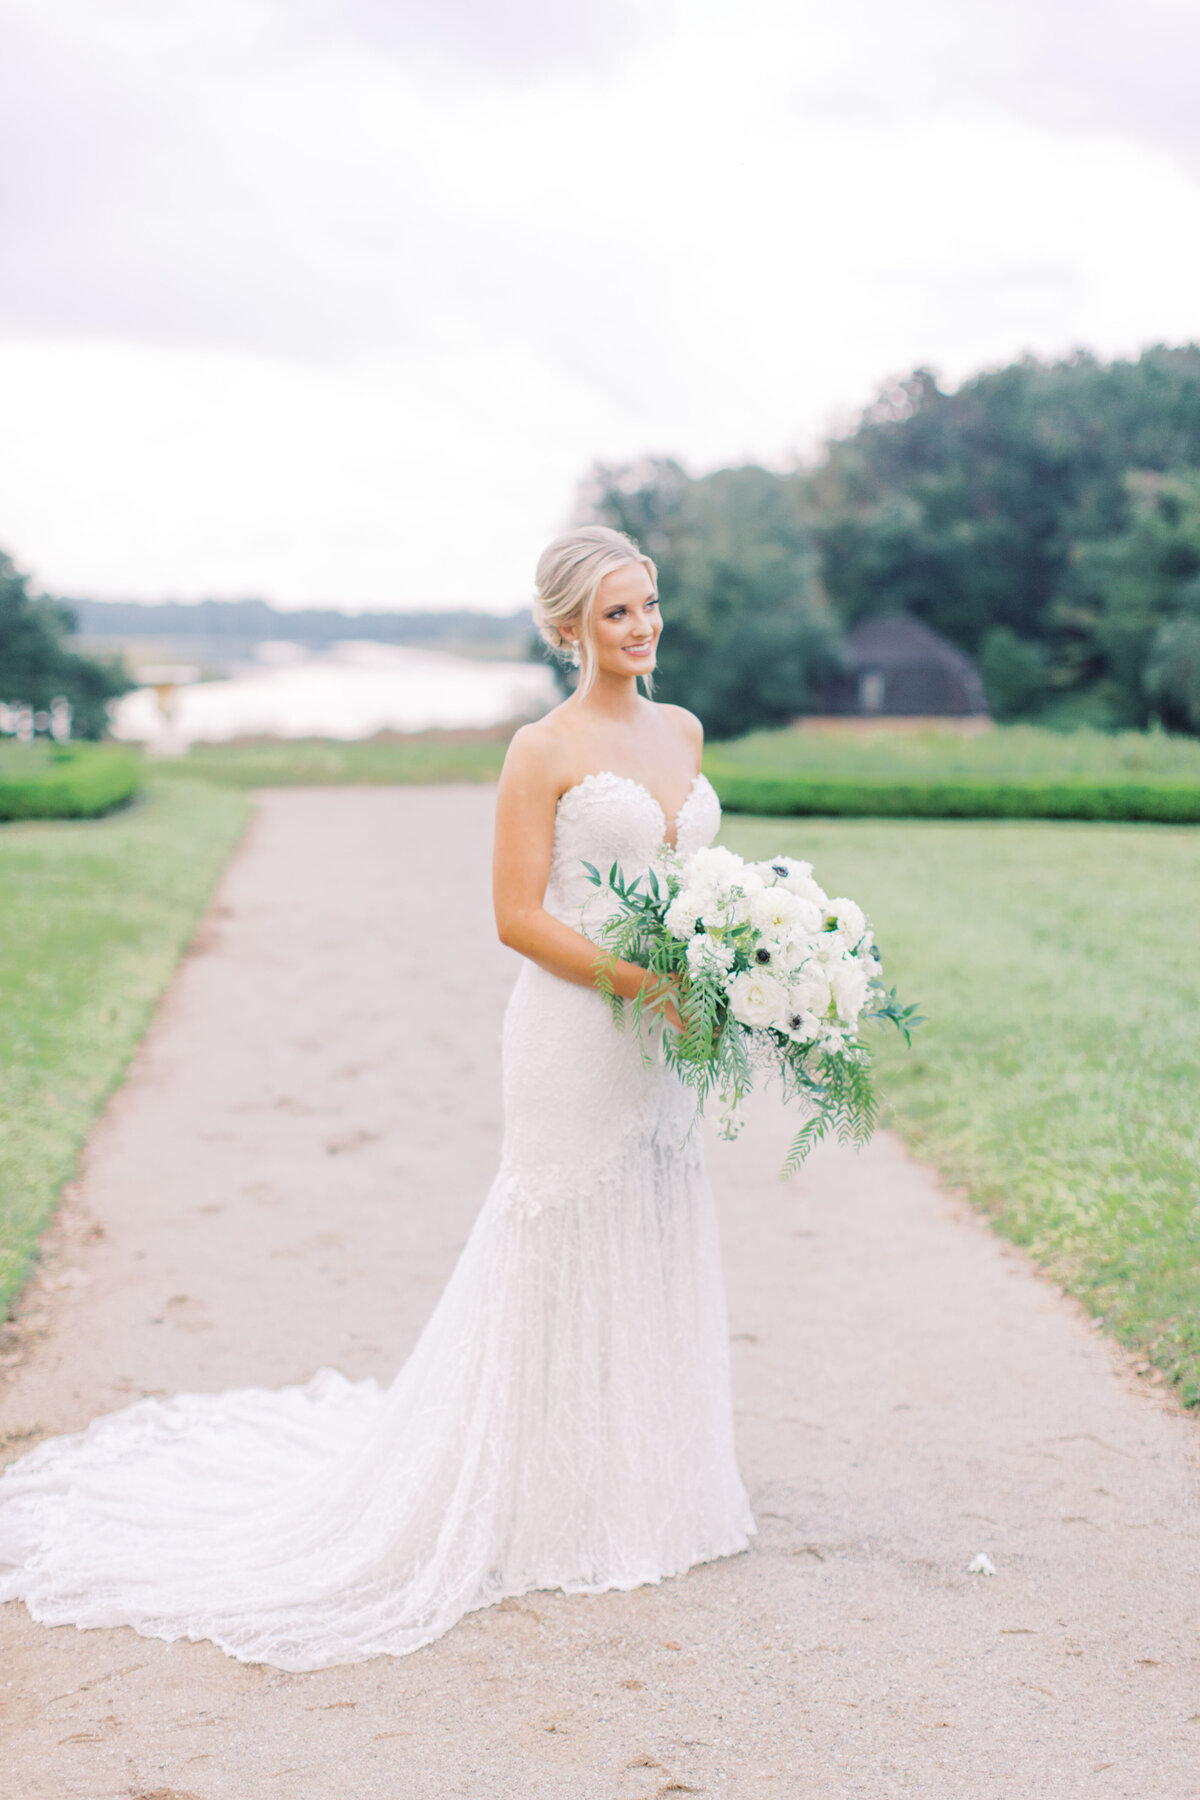 Melton_Wedding__Middleton_Place_Plantation_Charleston_South_Carolina_Jacksonville_Florida_Devon_Donnahoo_Photography__0307